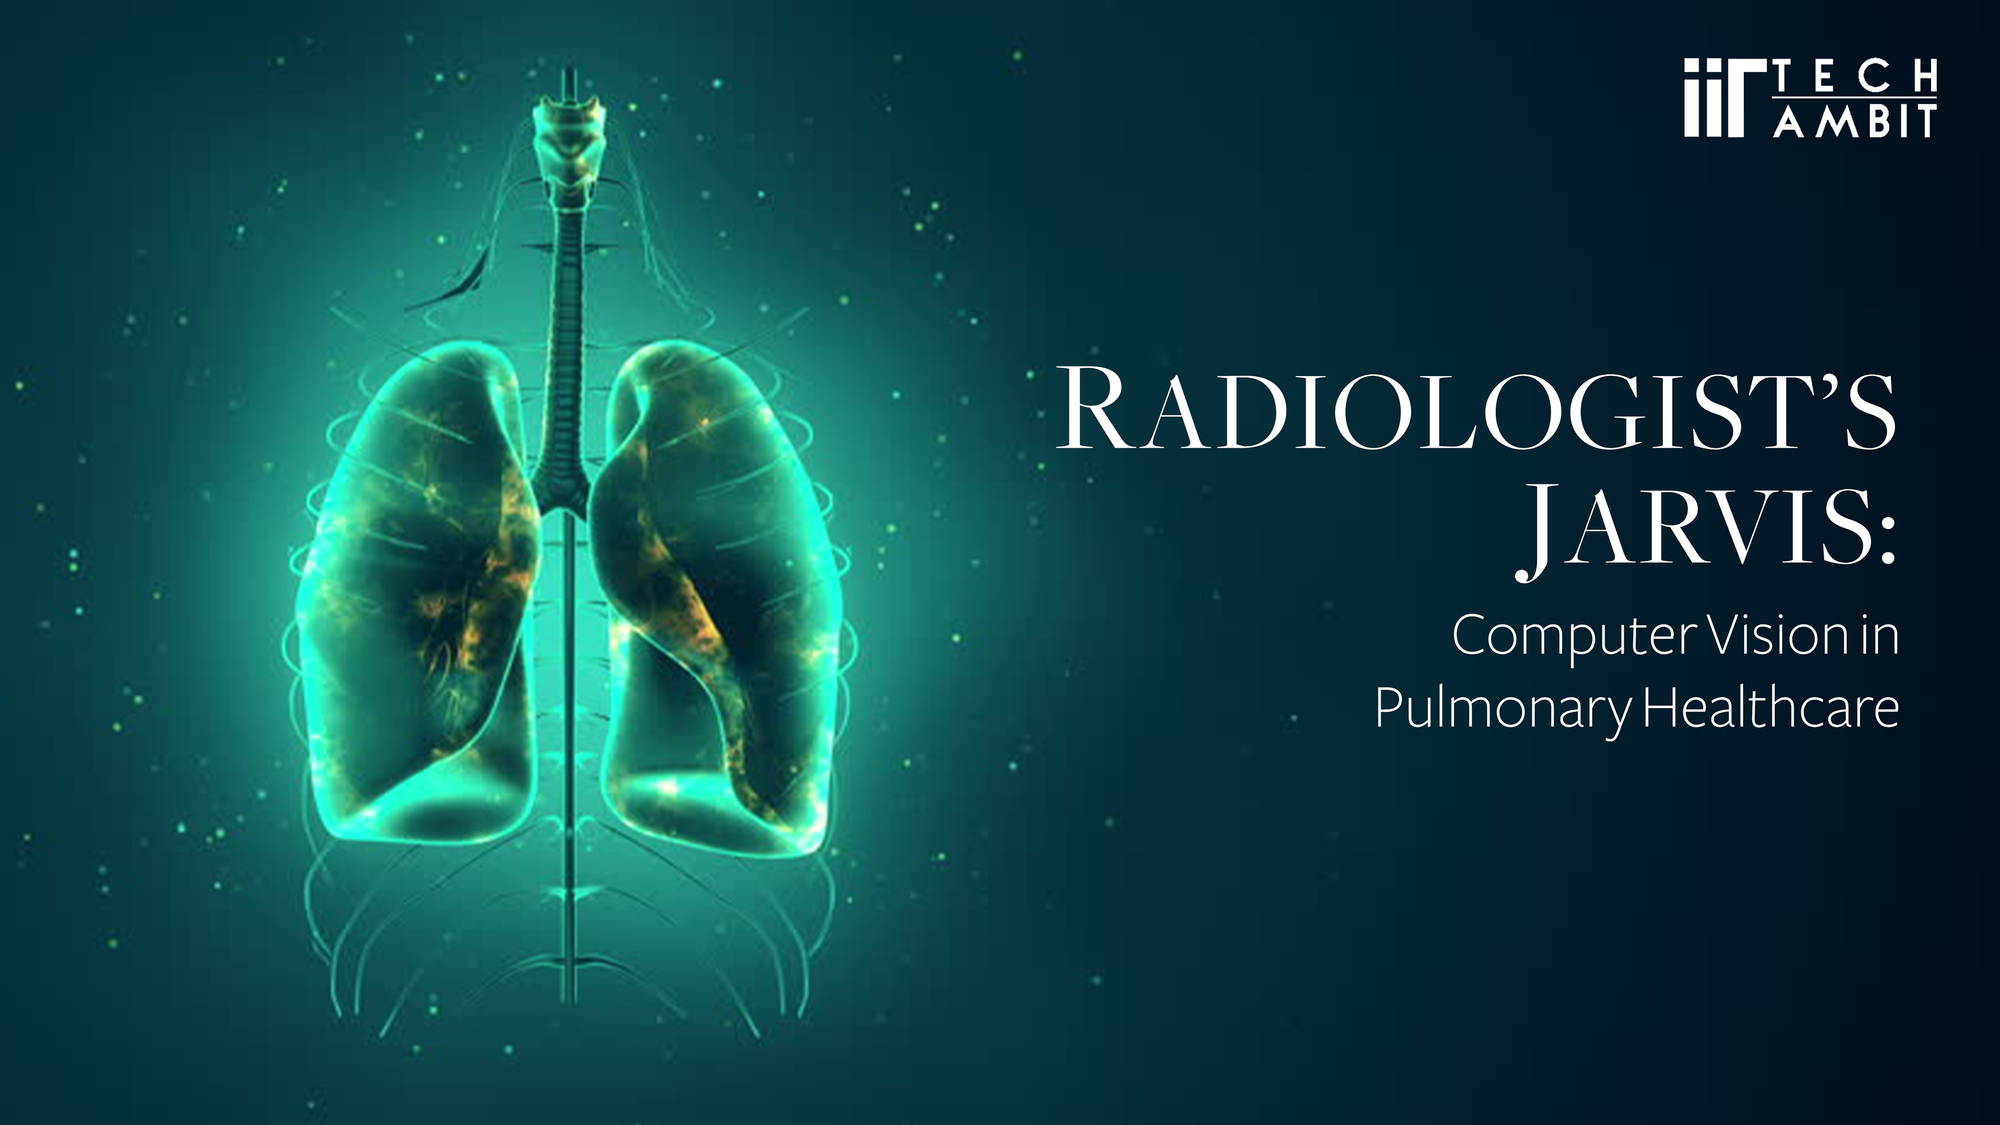 Radiologist's Jarvis: Computer Vision in Pulmonary Healthcare